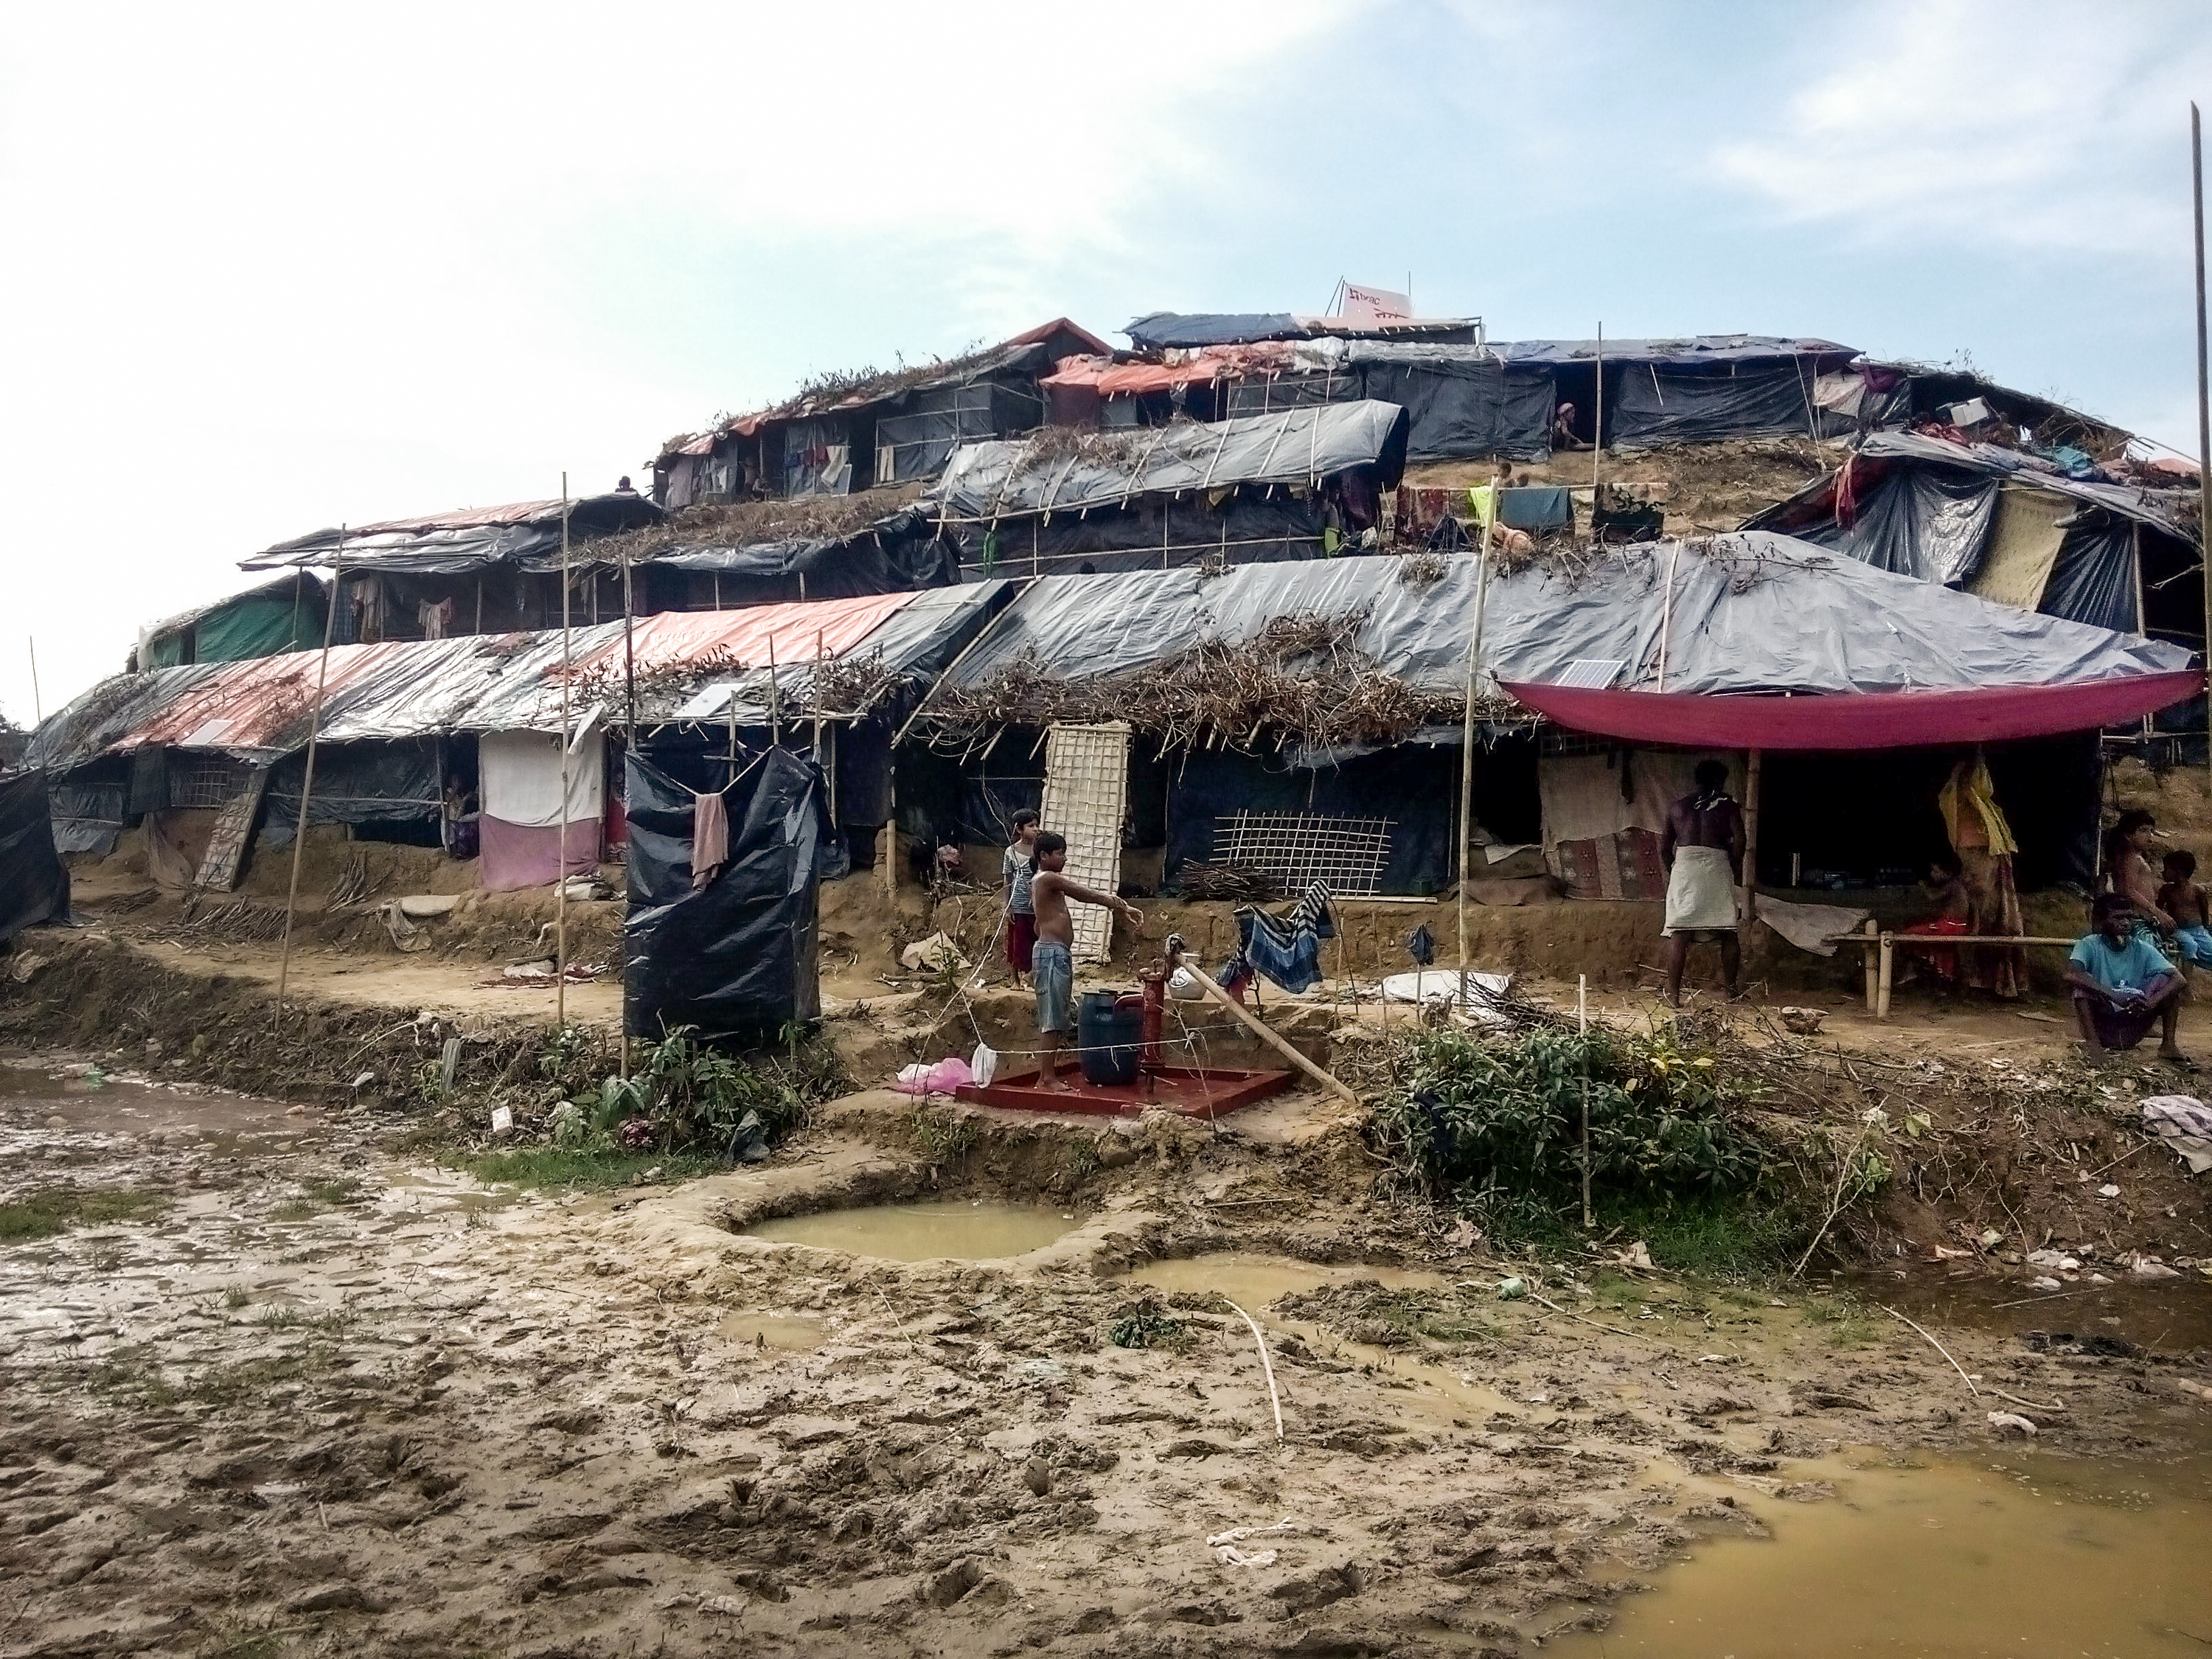 Makeshift homes in a Rohingya refugee settlement in Bangladesh.